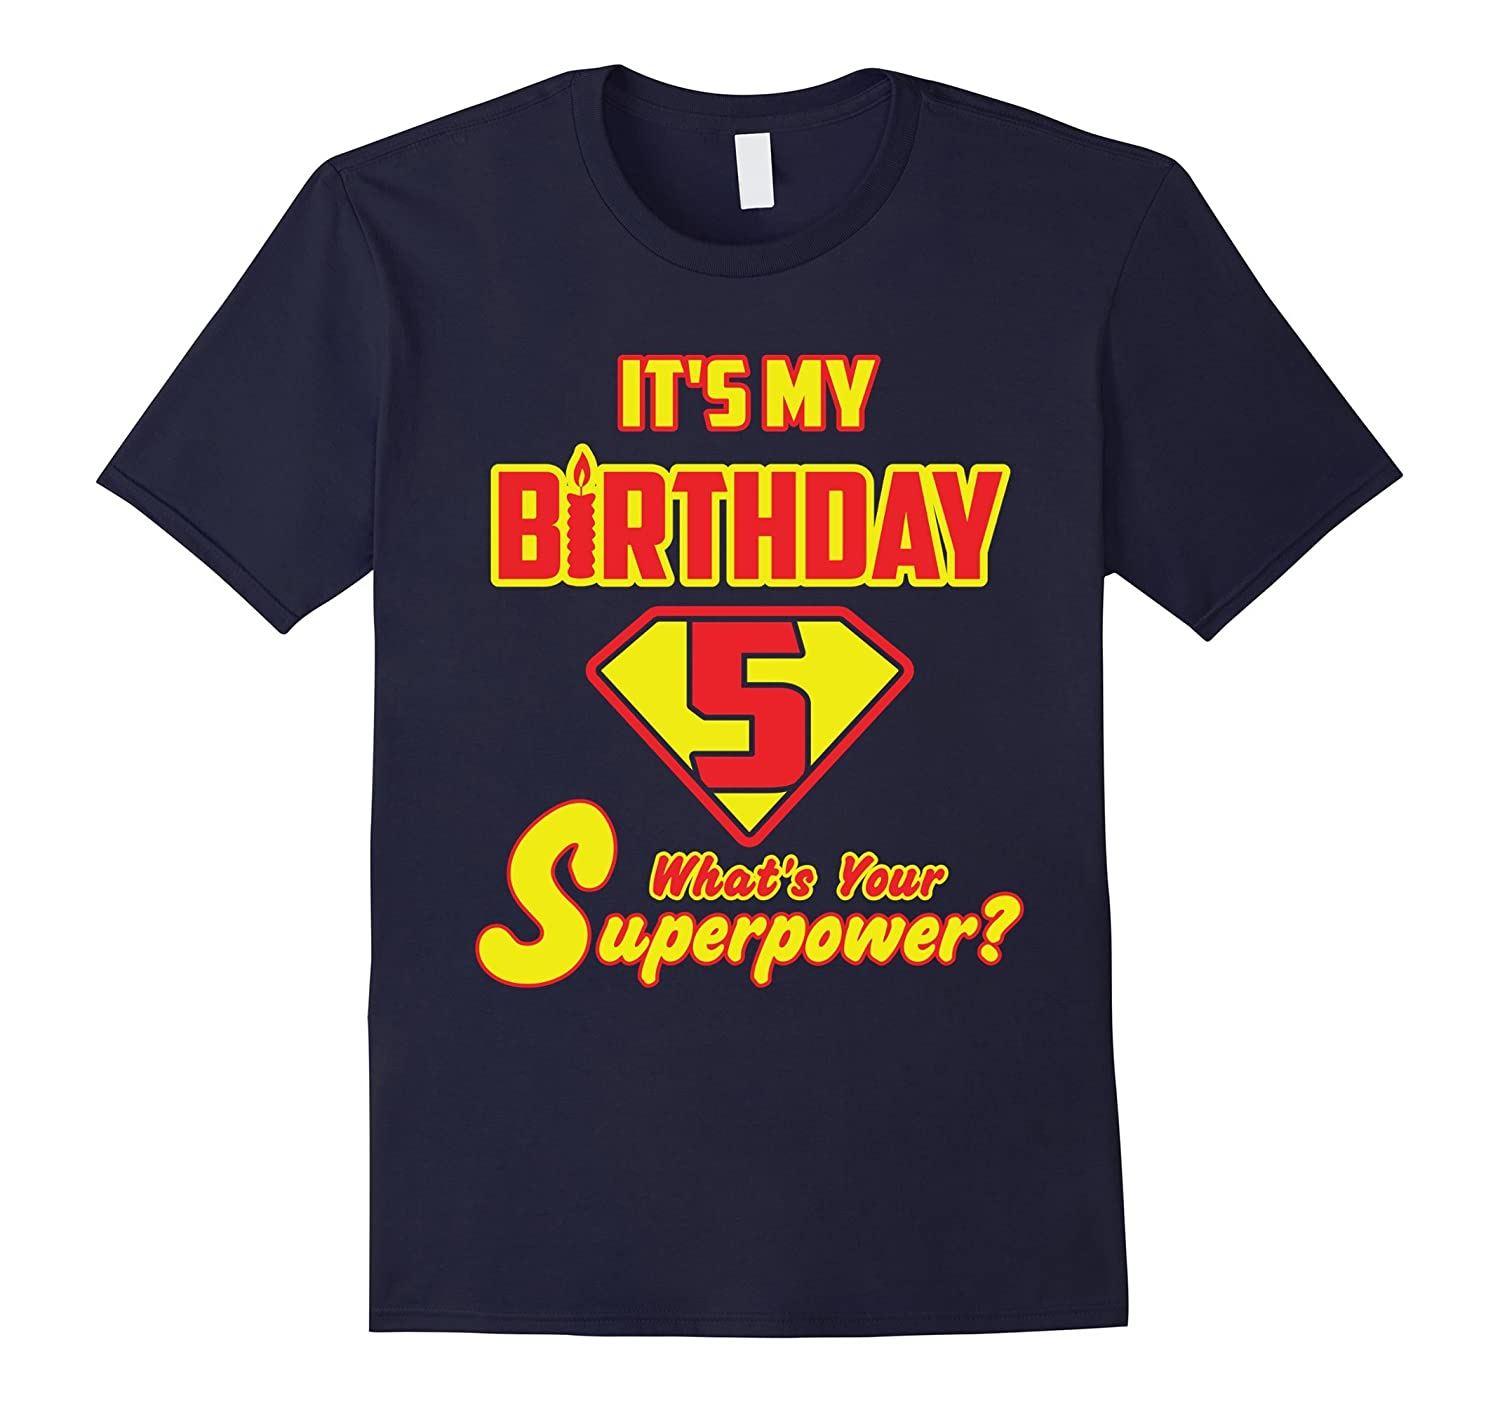 2 Sided Superhero Its My Birthday Shirt Gift For 5 Year Old TD Teedep